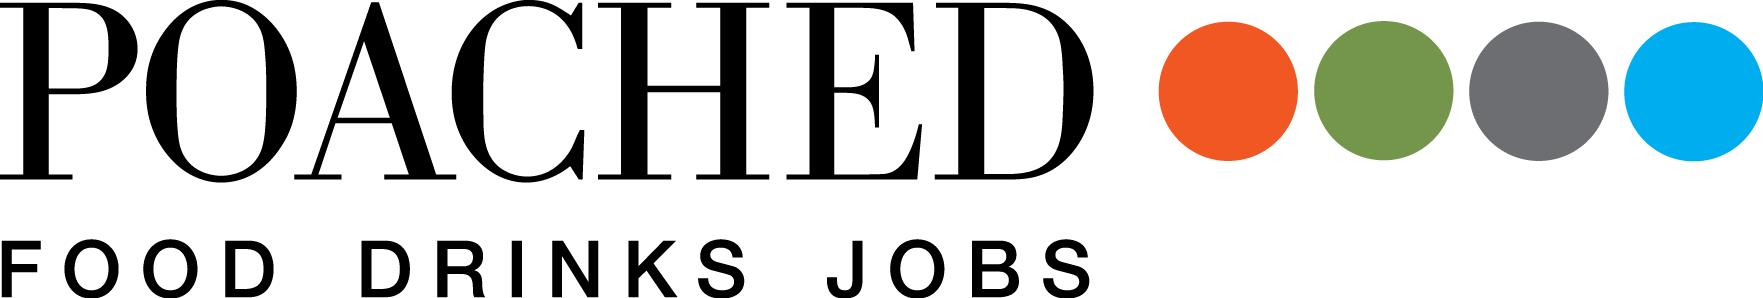 Poached Jobs logo